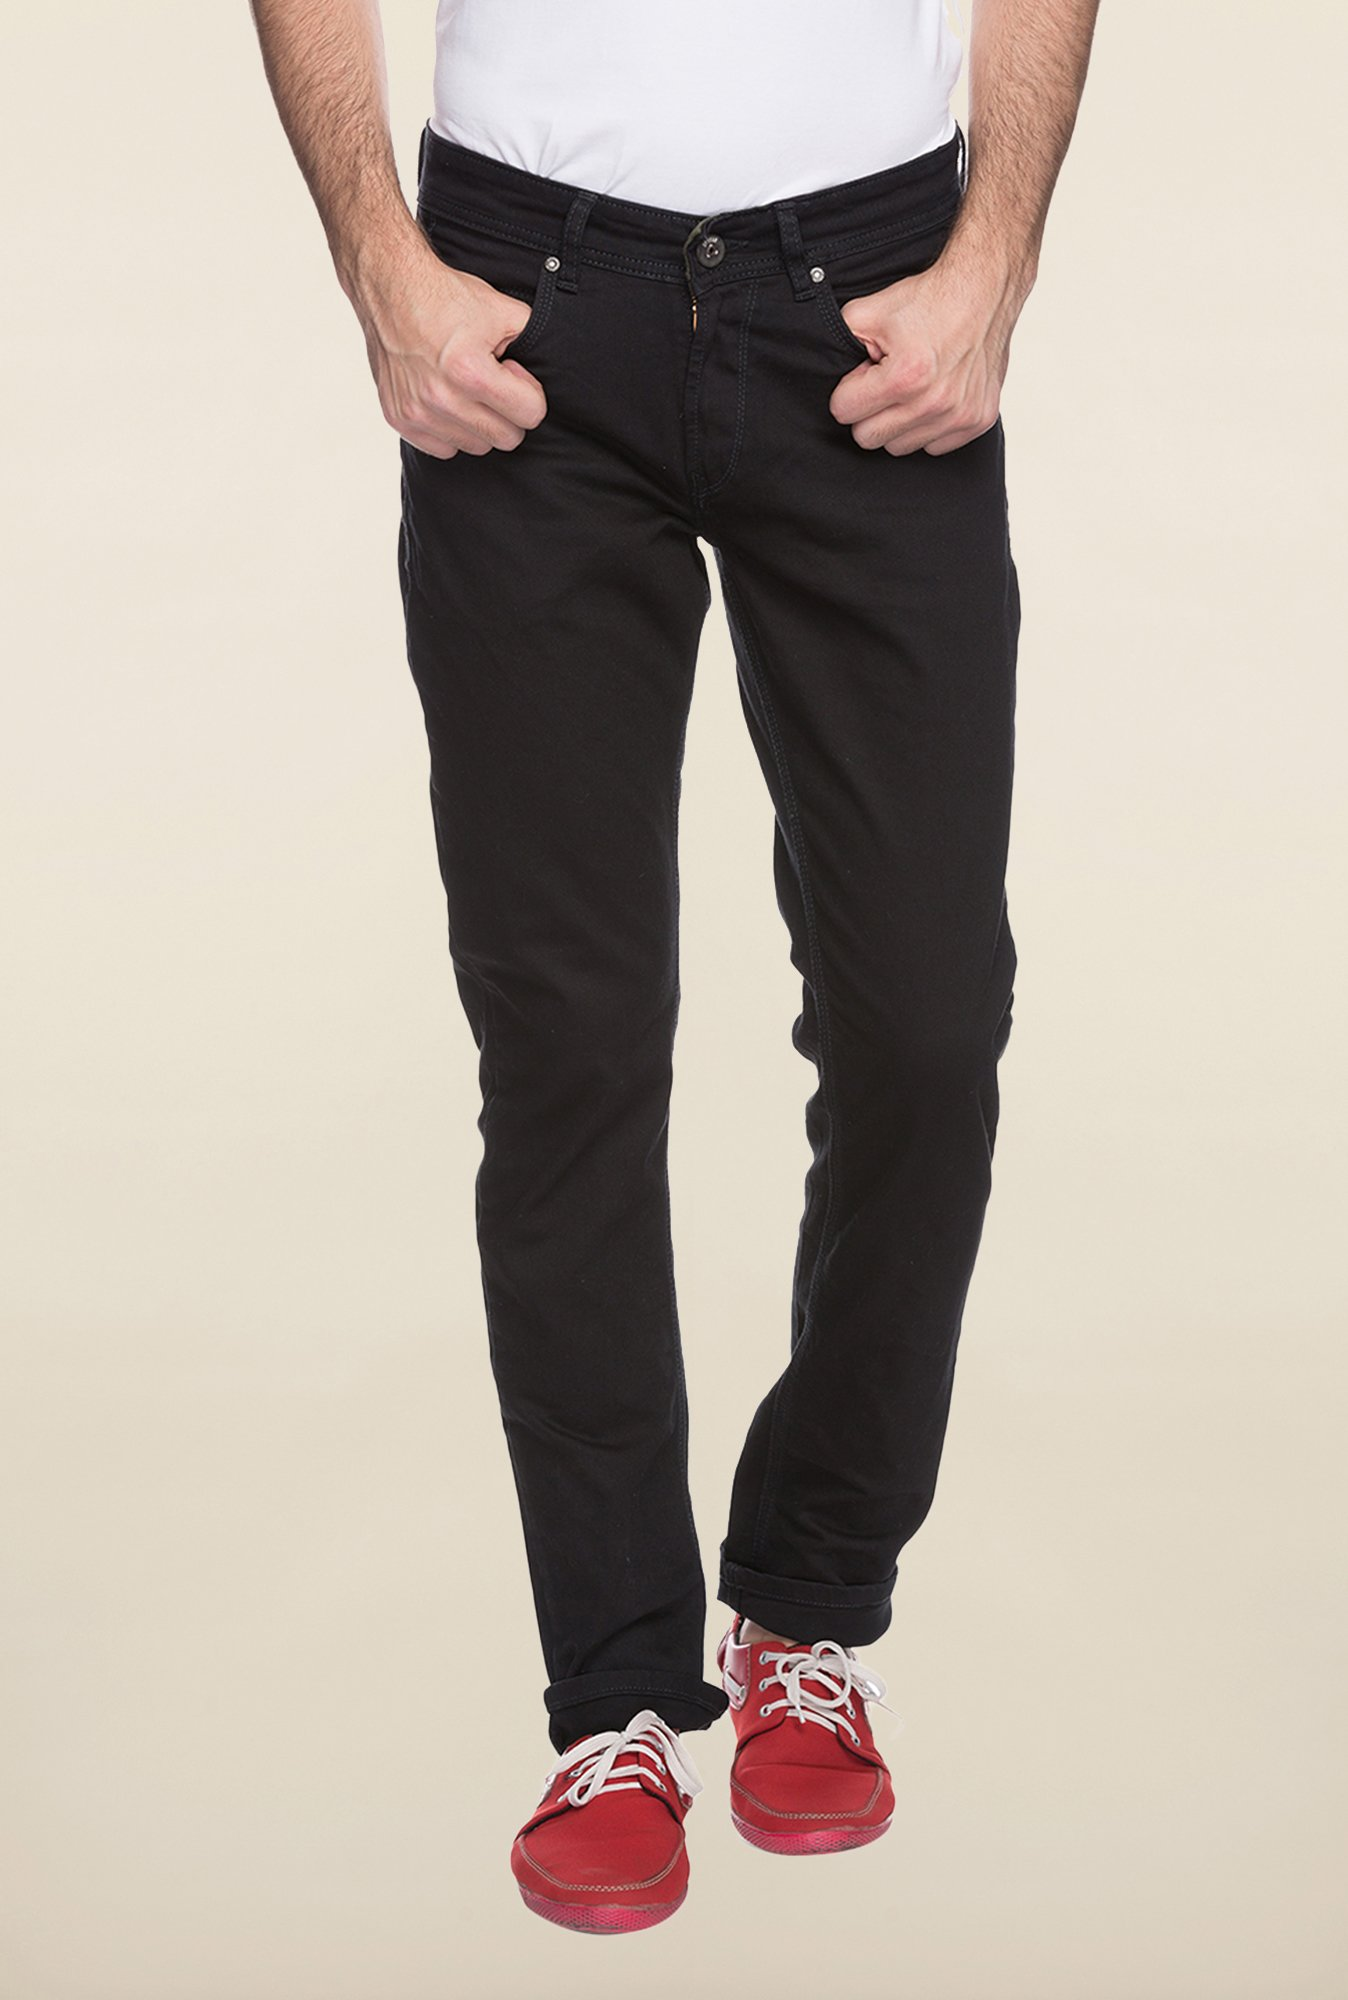 Spykar Black Straight Fit Jeans